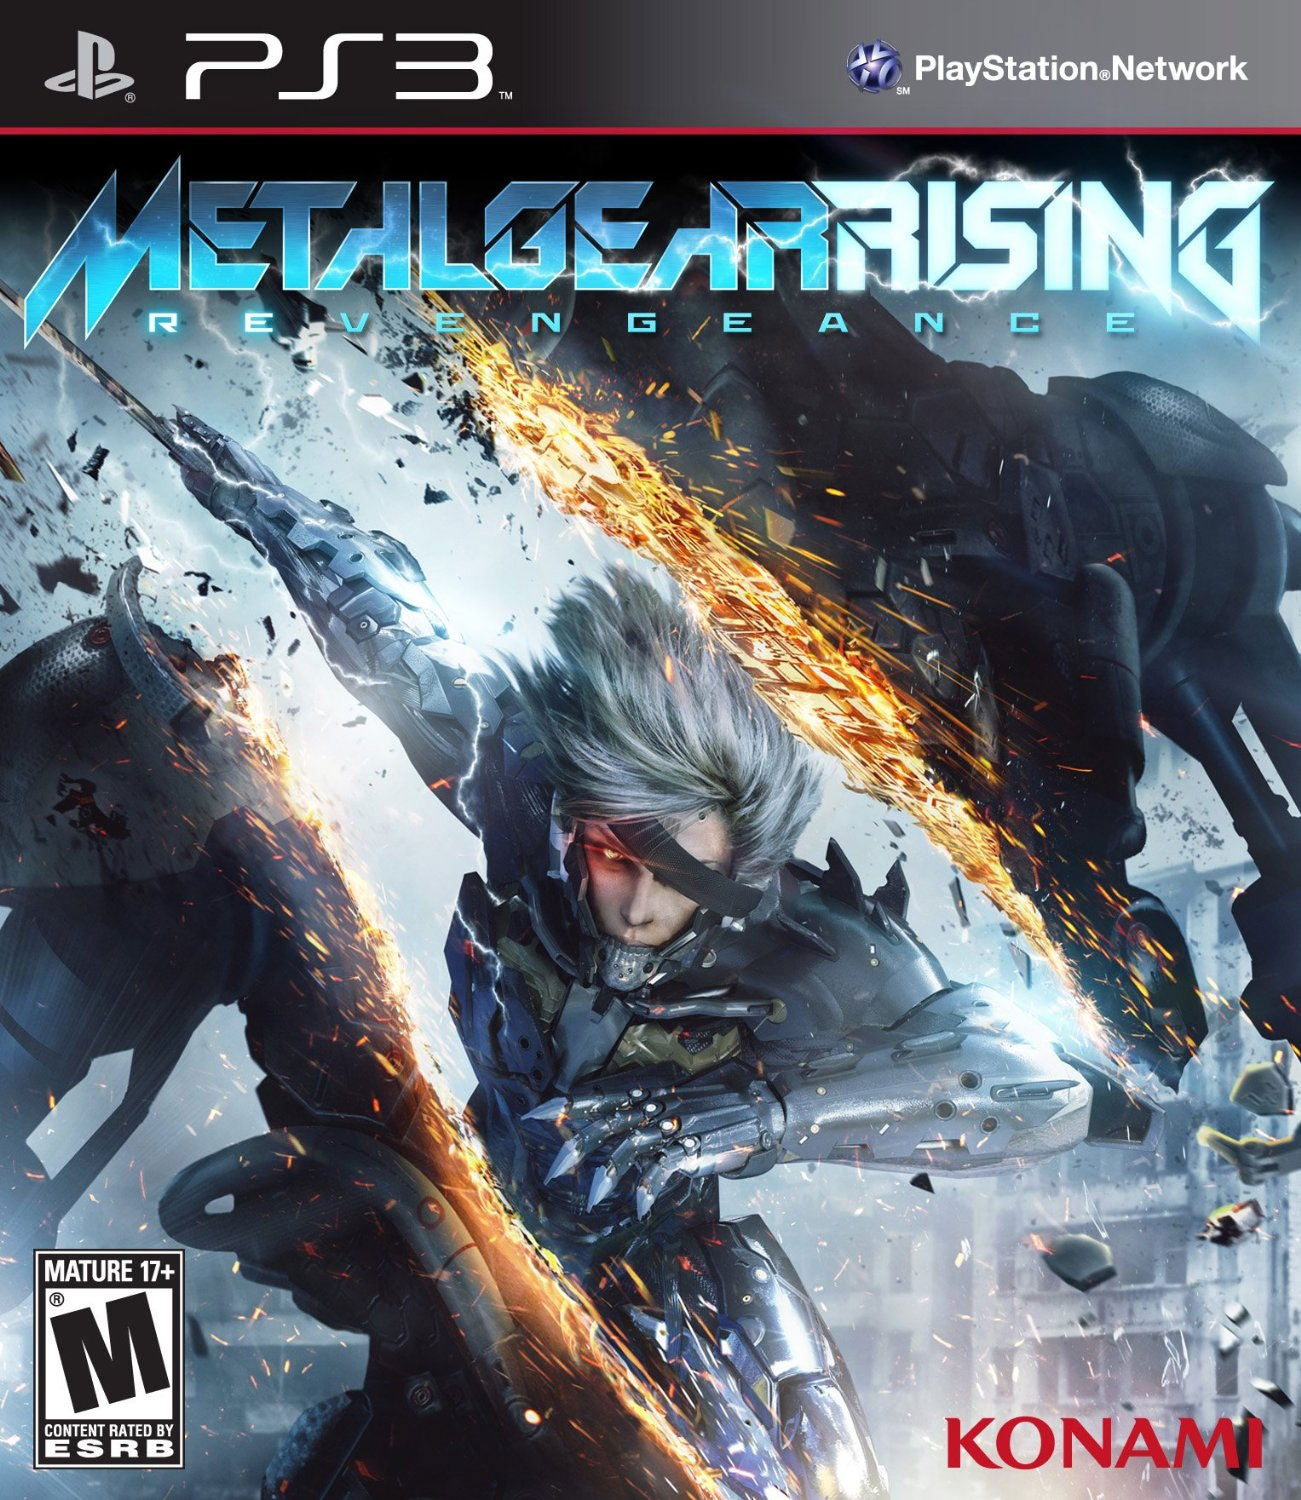 PS3 - Metal Gear Rising Revengeance